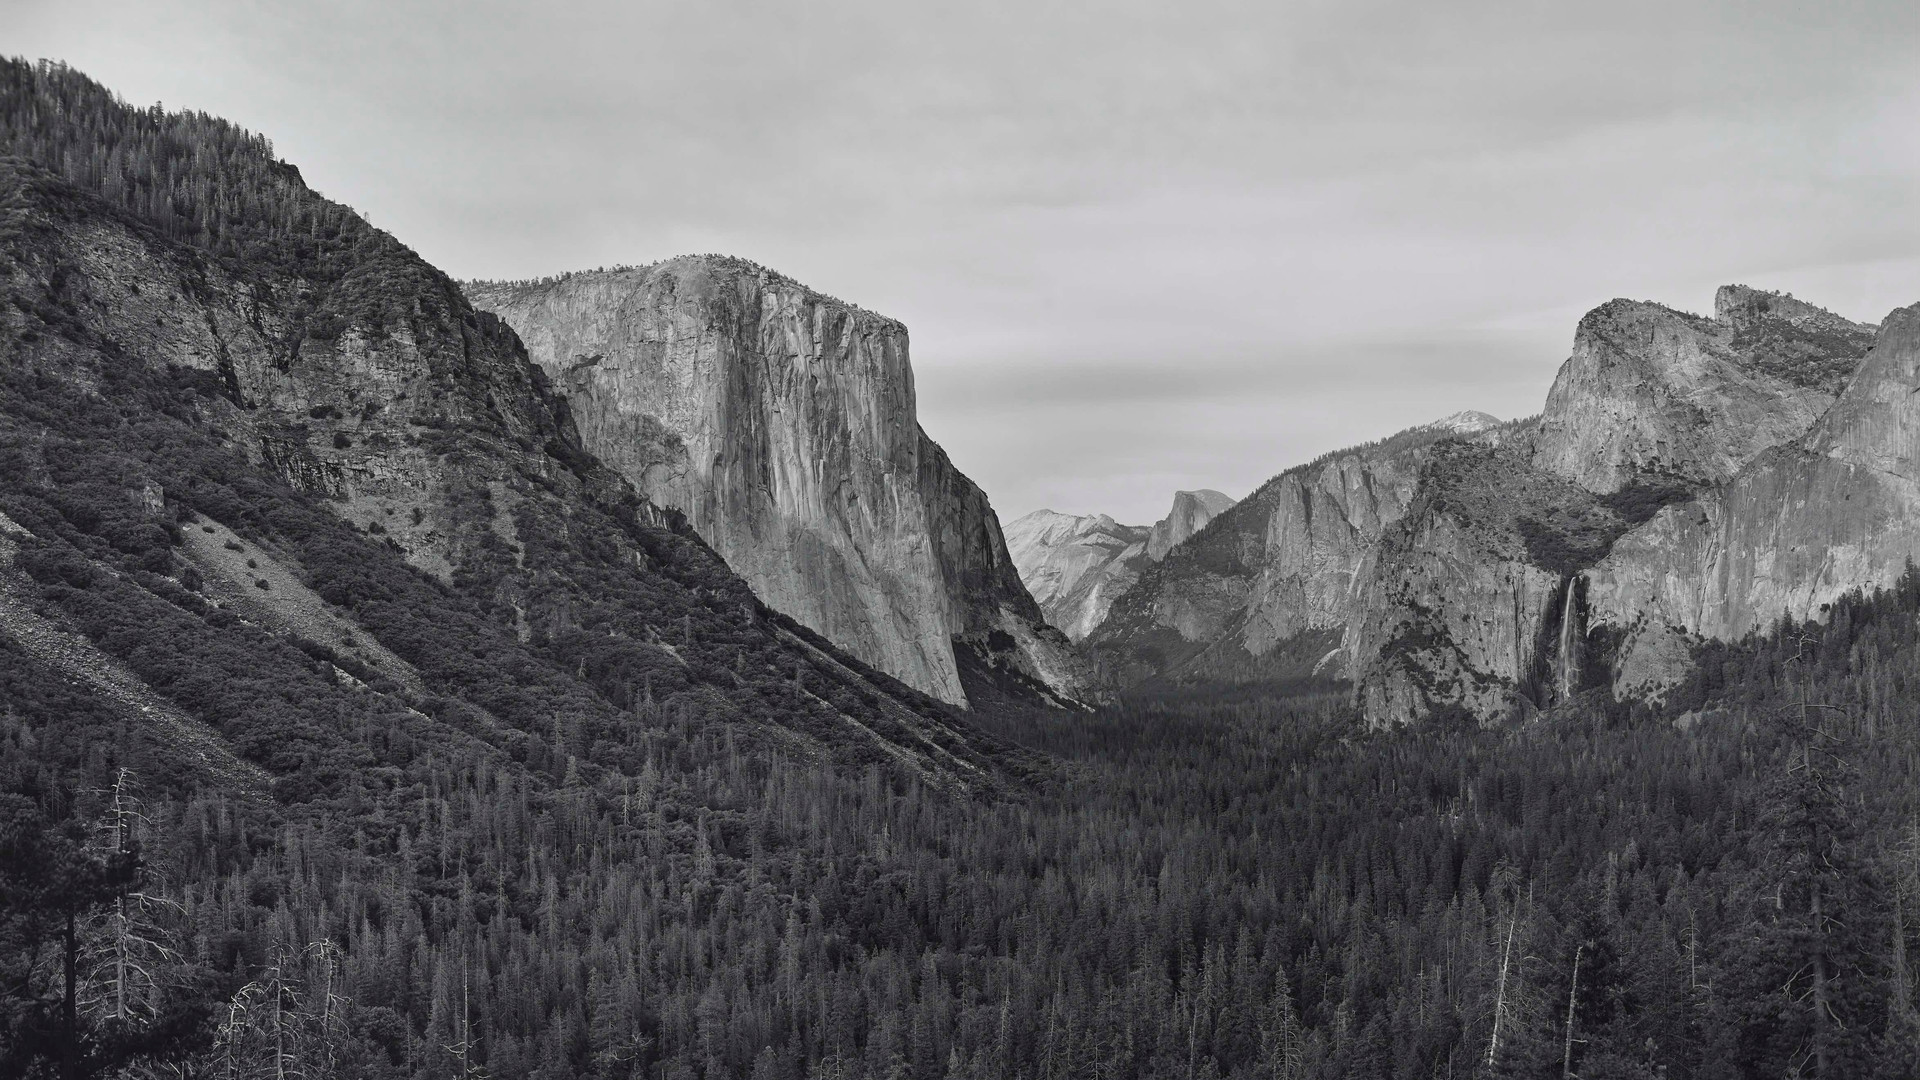 Richard Learoyd, Yosemite IV (BGV), 2018